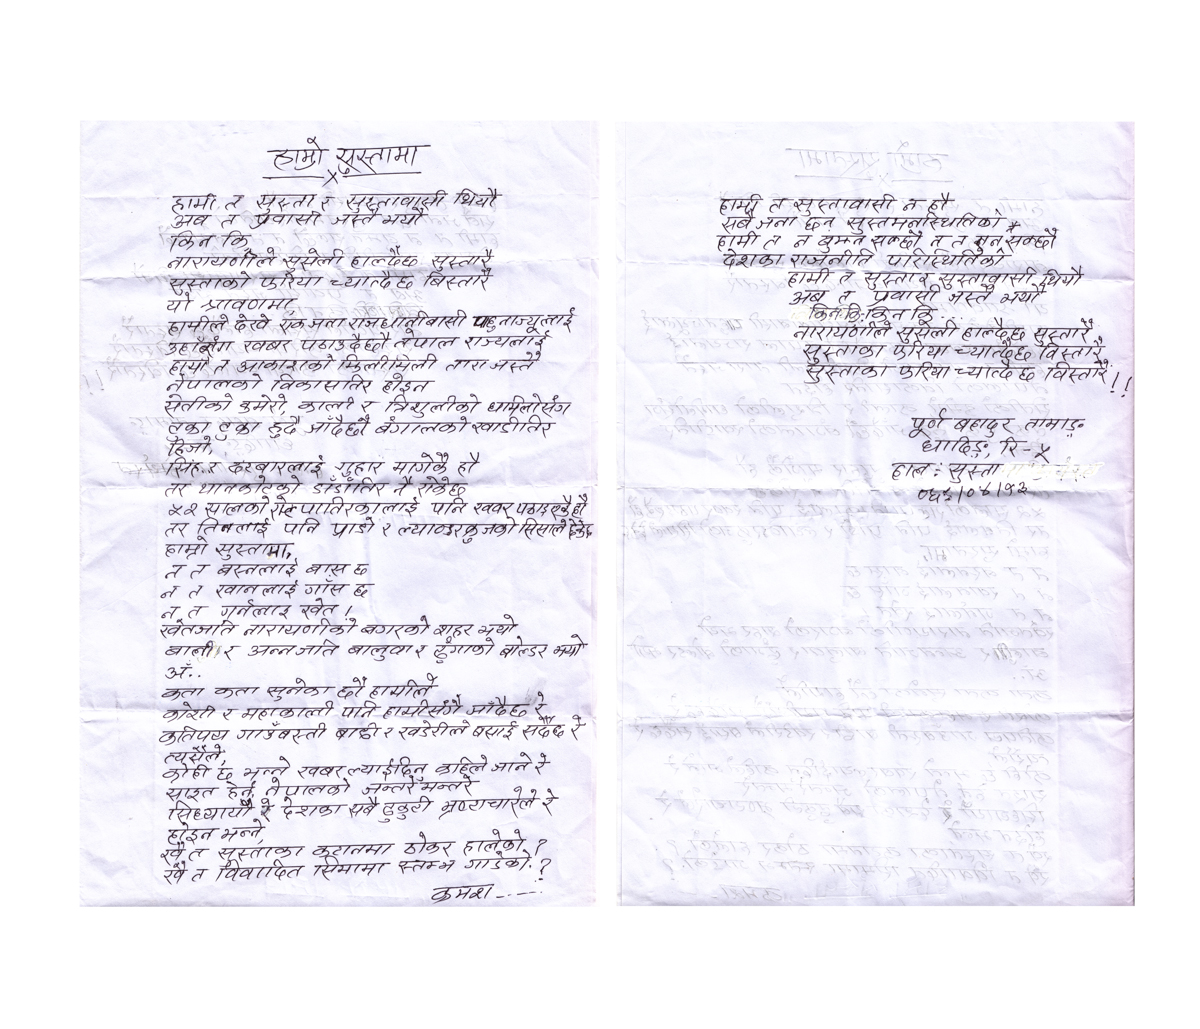 A poem wirtten as an appeal to the state by Purna Bahadur Tamang, a police doctor stationed in Susta.